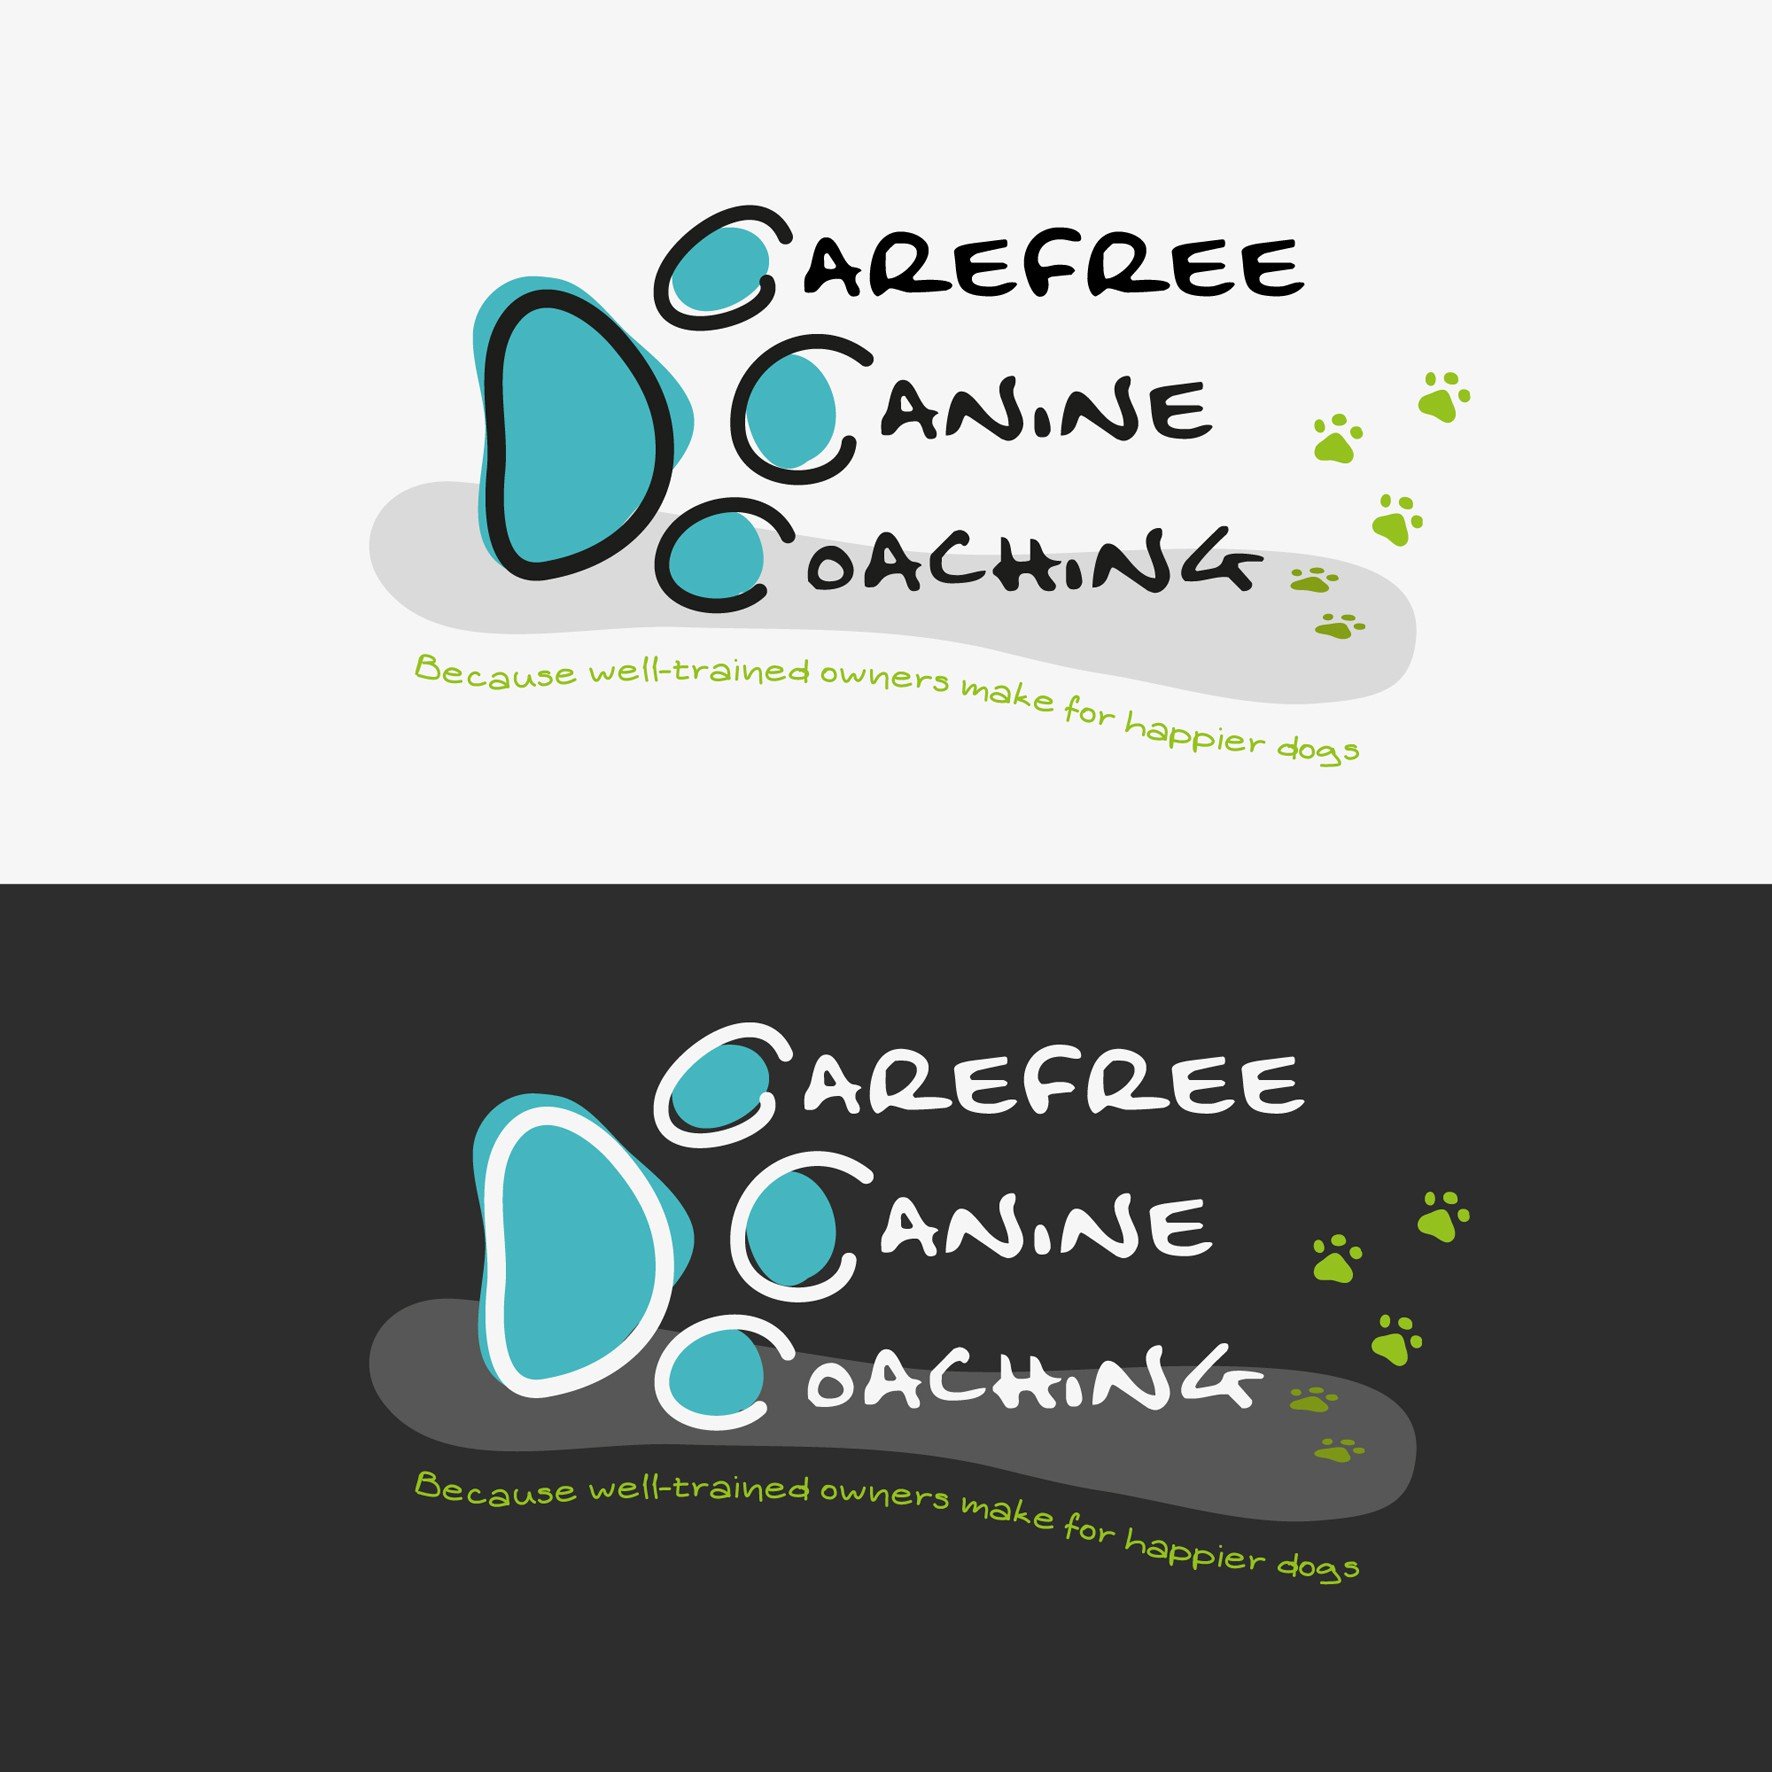 Carefree Canine Coaching is going to the dogs!  Help create a logo to show the owners we mean business!